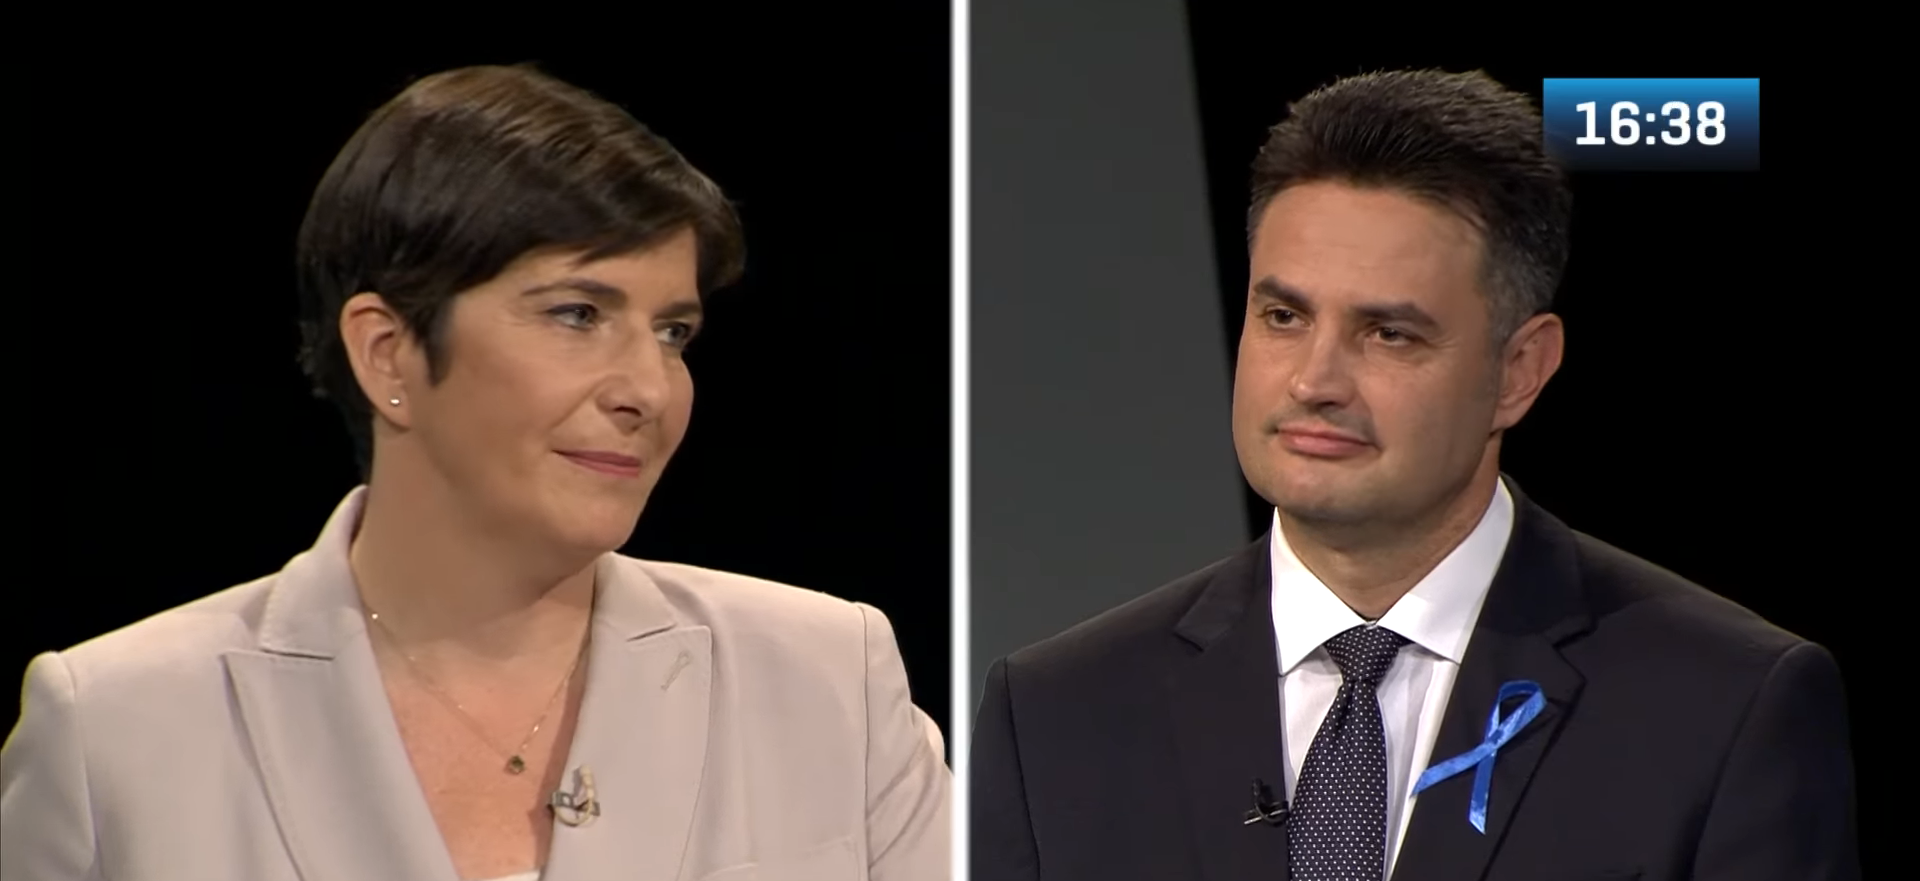 Opposition PM Candidates in Third Debate Promise to Help Winner's Campaign after Primaries